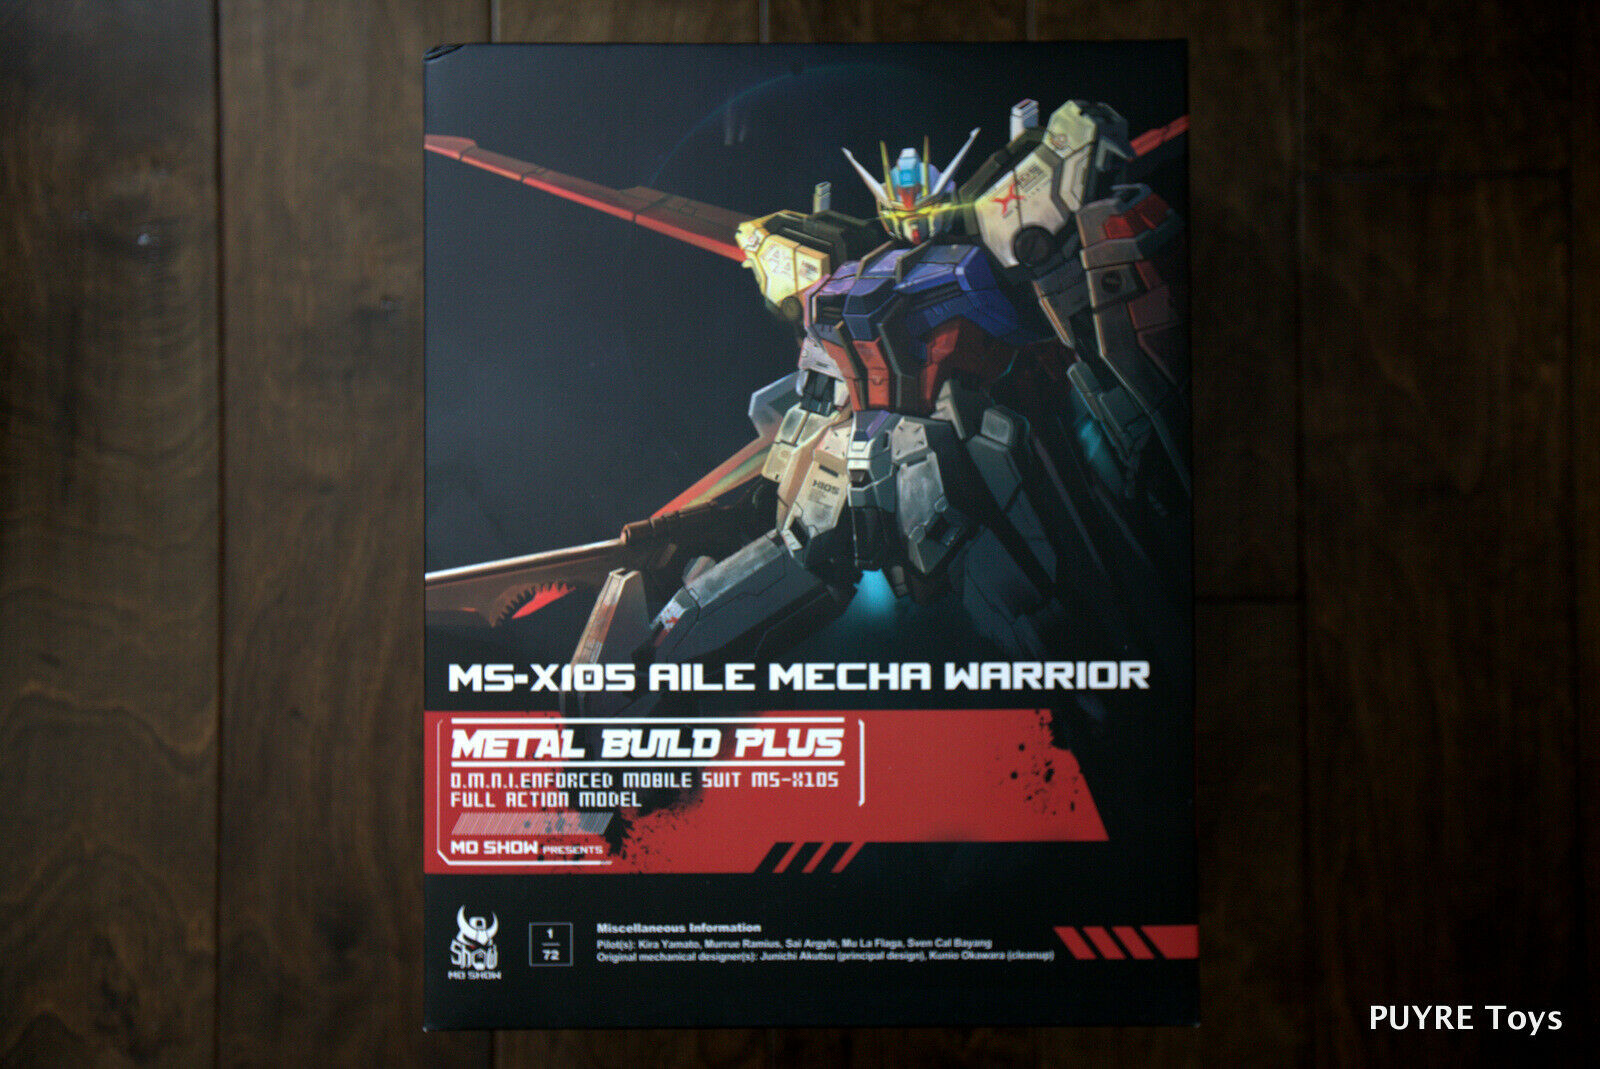 NEW Mo Show Metal Build Plus AILE MECHA WARRIOR Strike Gundam 1 72 MISB US